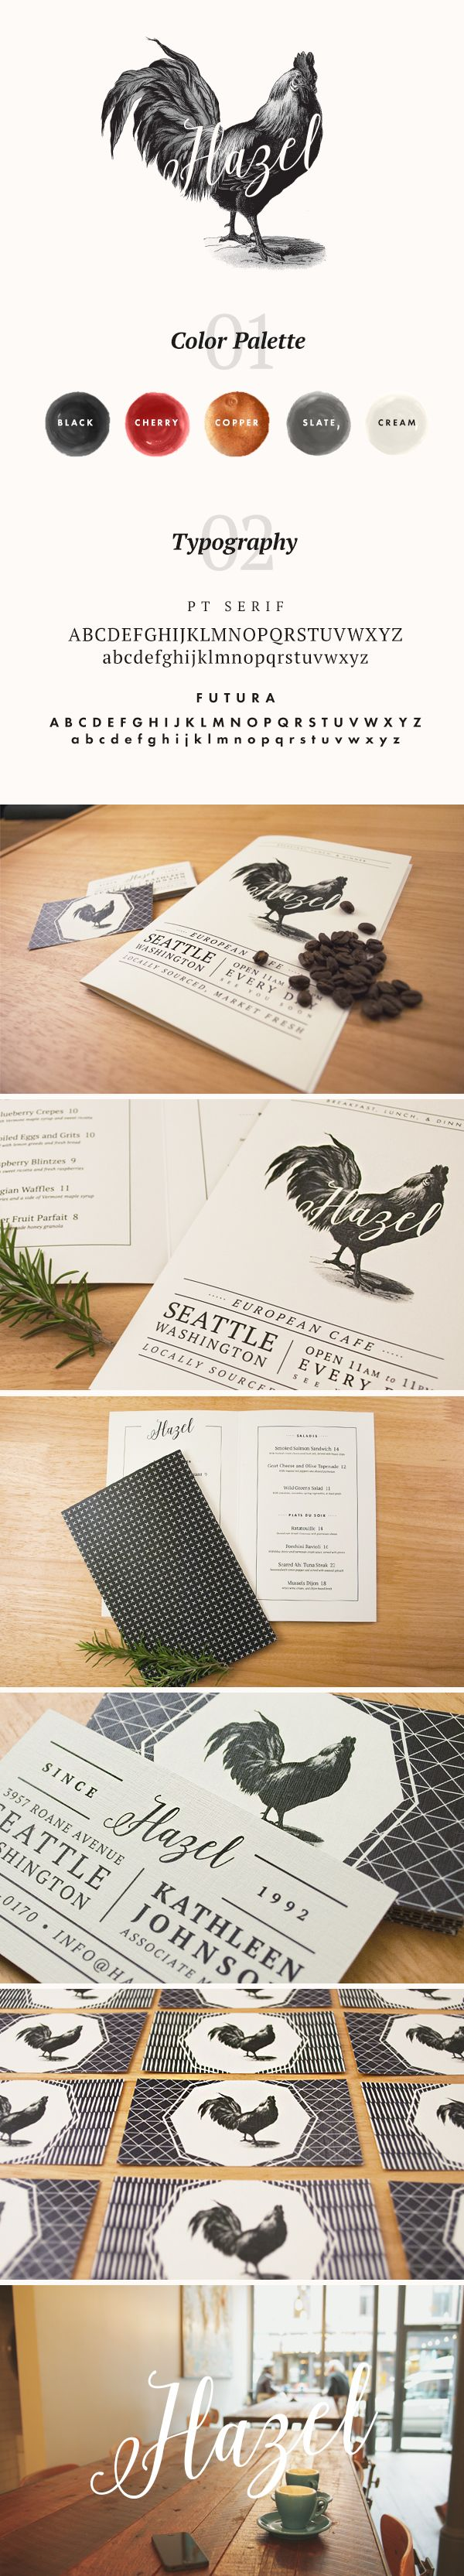 Hazel Branding by Nikki Clark // Inspiration for the EMRLD14 Team // www.emrld14.com